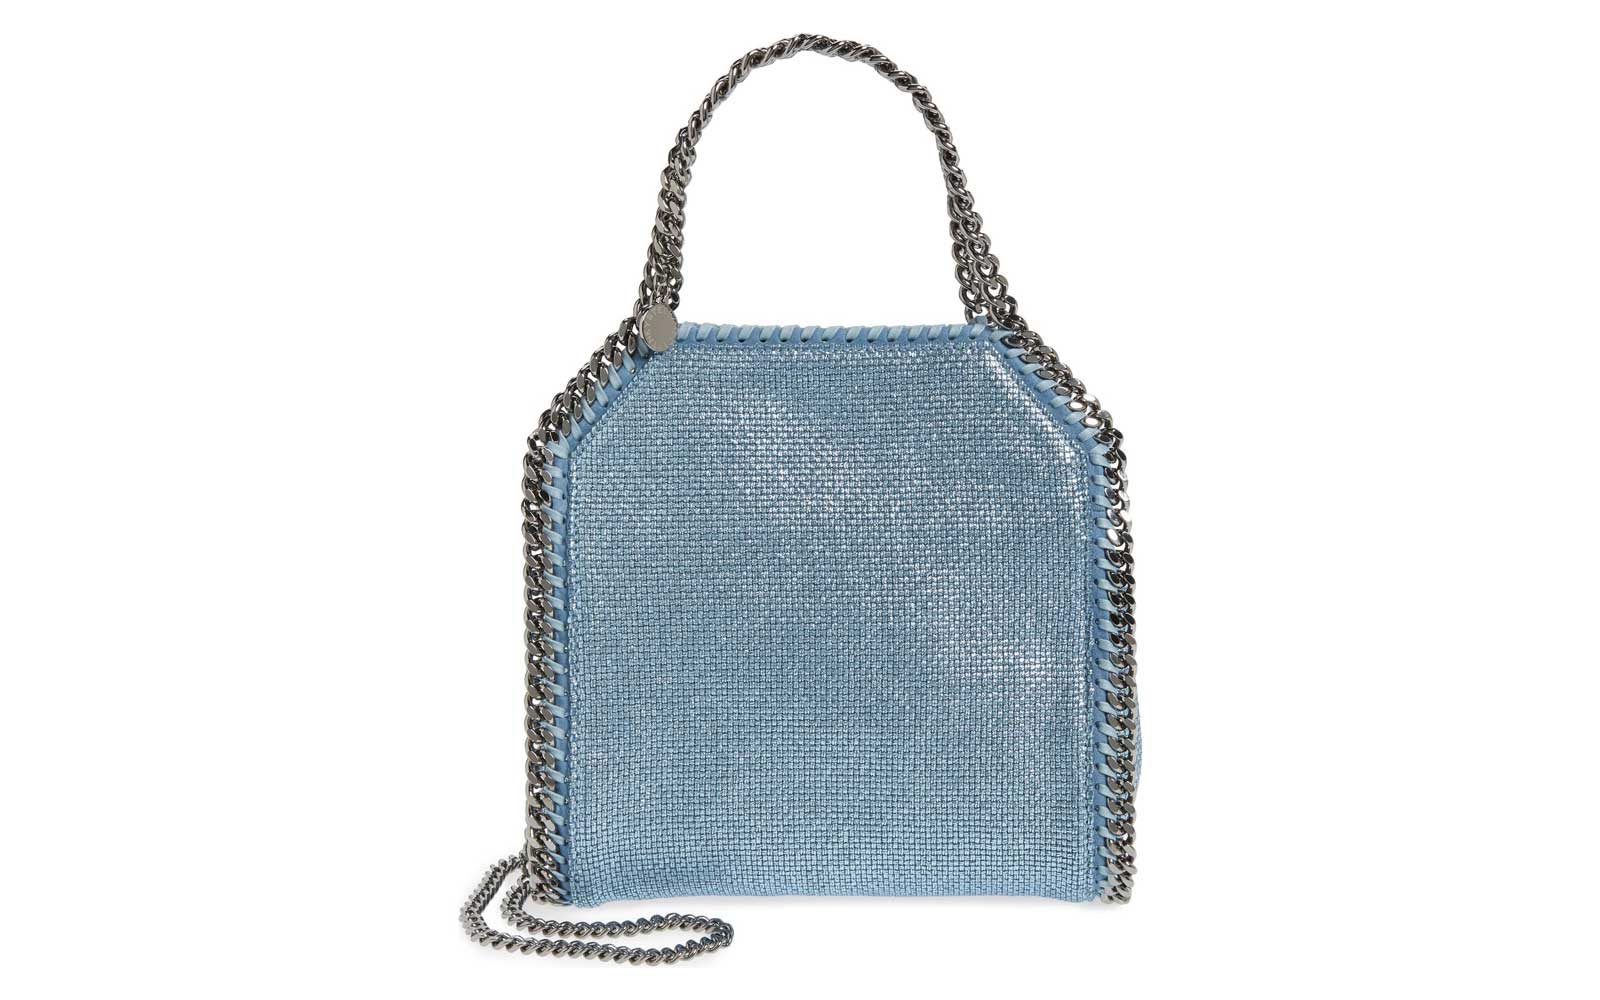 metallic light blue tote bag with silver chain handle and shoulder strap